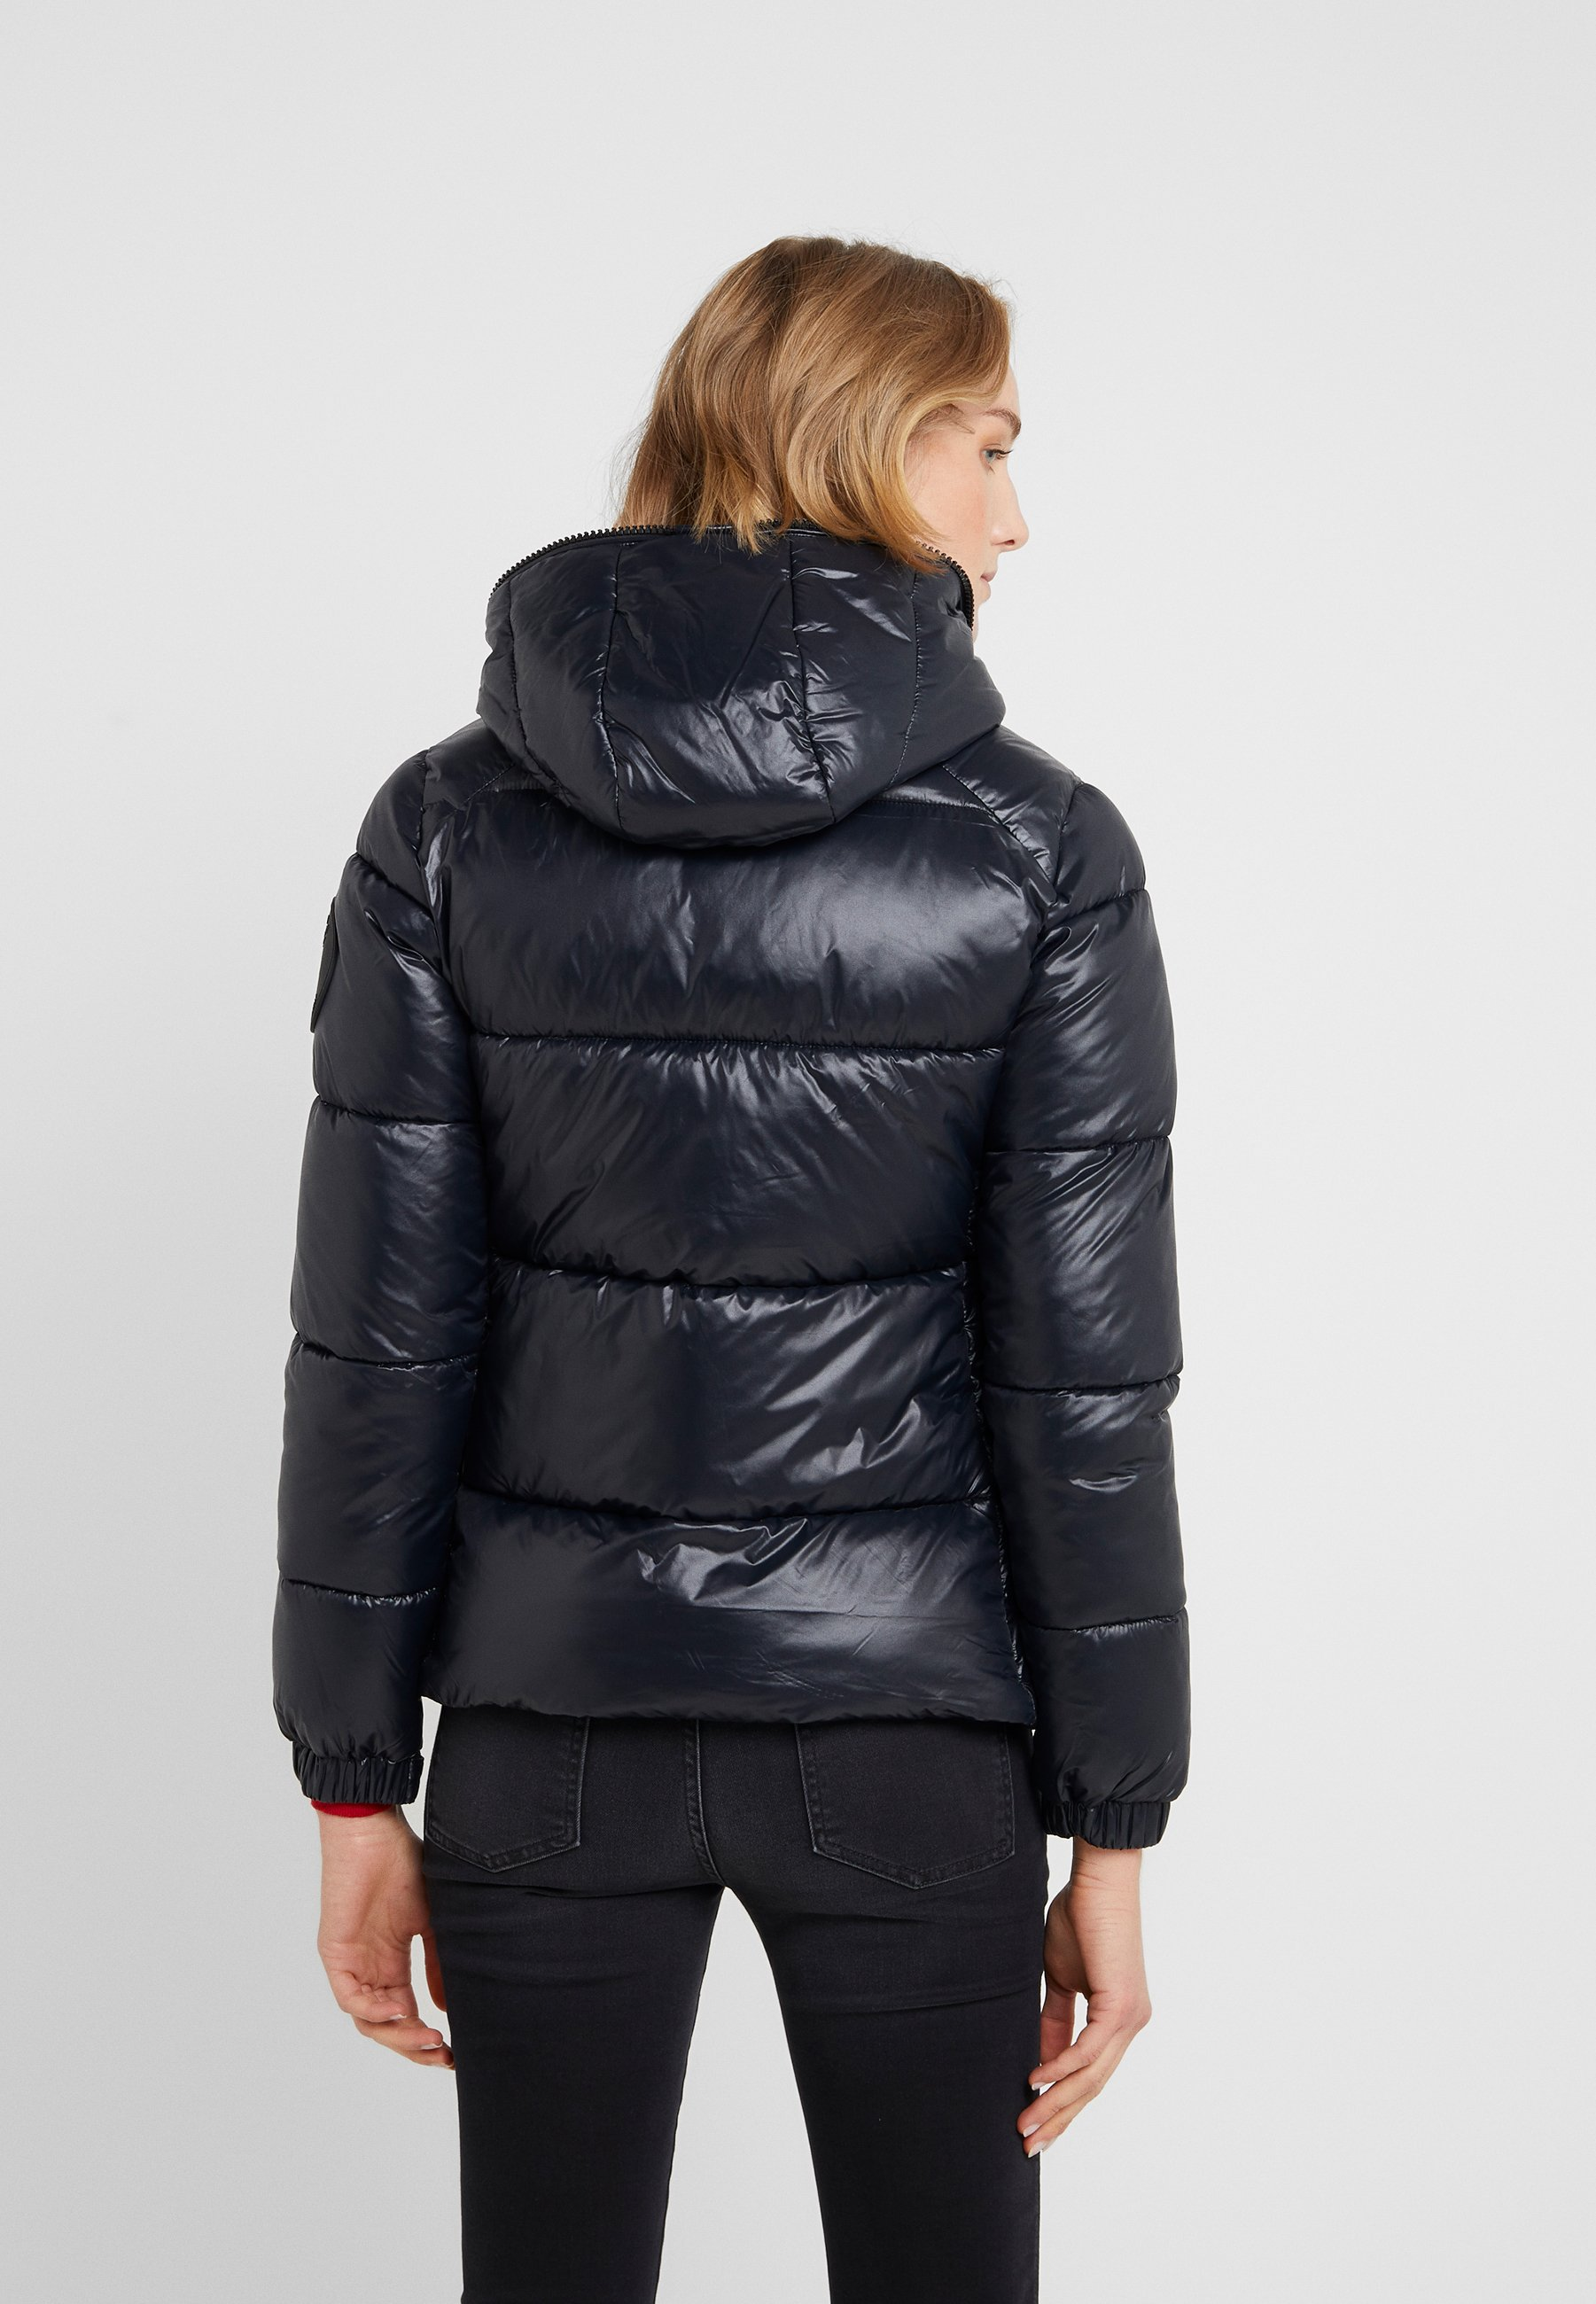 LUCK Winterjacke black